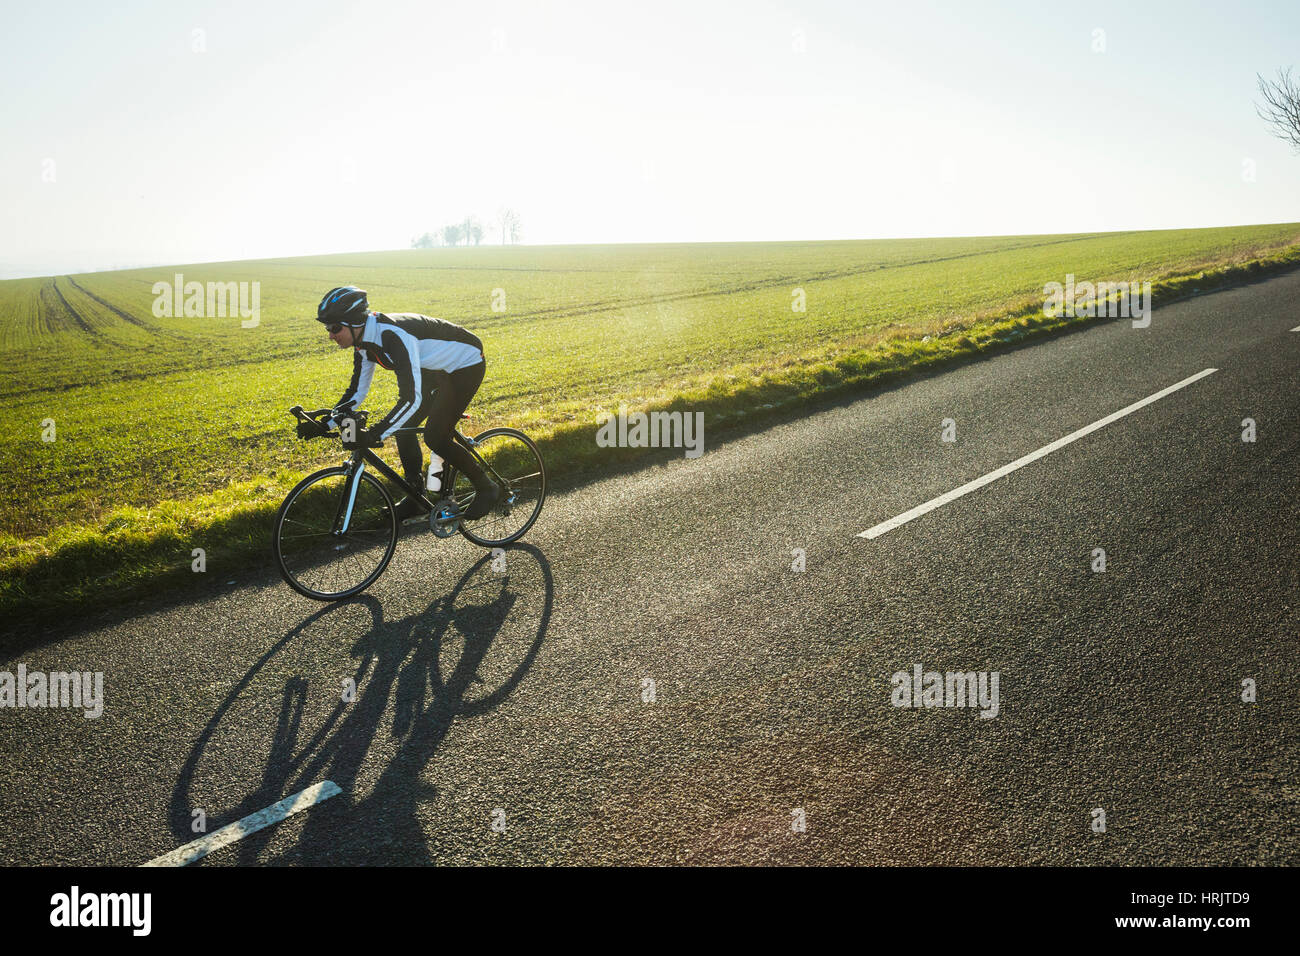 A cyclist riding along a country road on a clear sunny winter day. Shadow on the road surface. - Stock Image